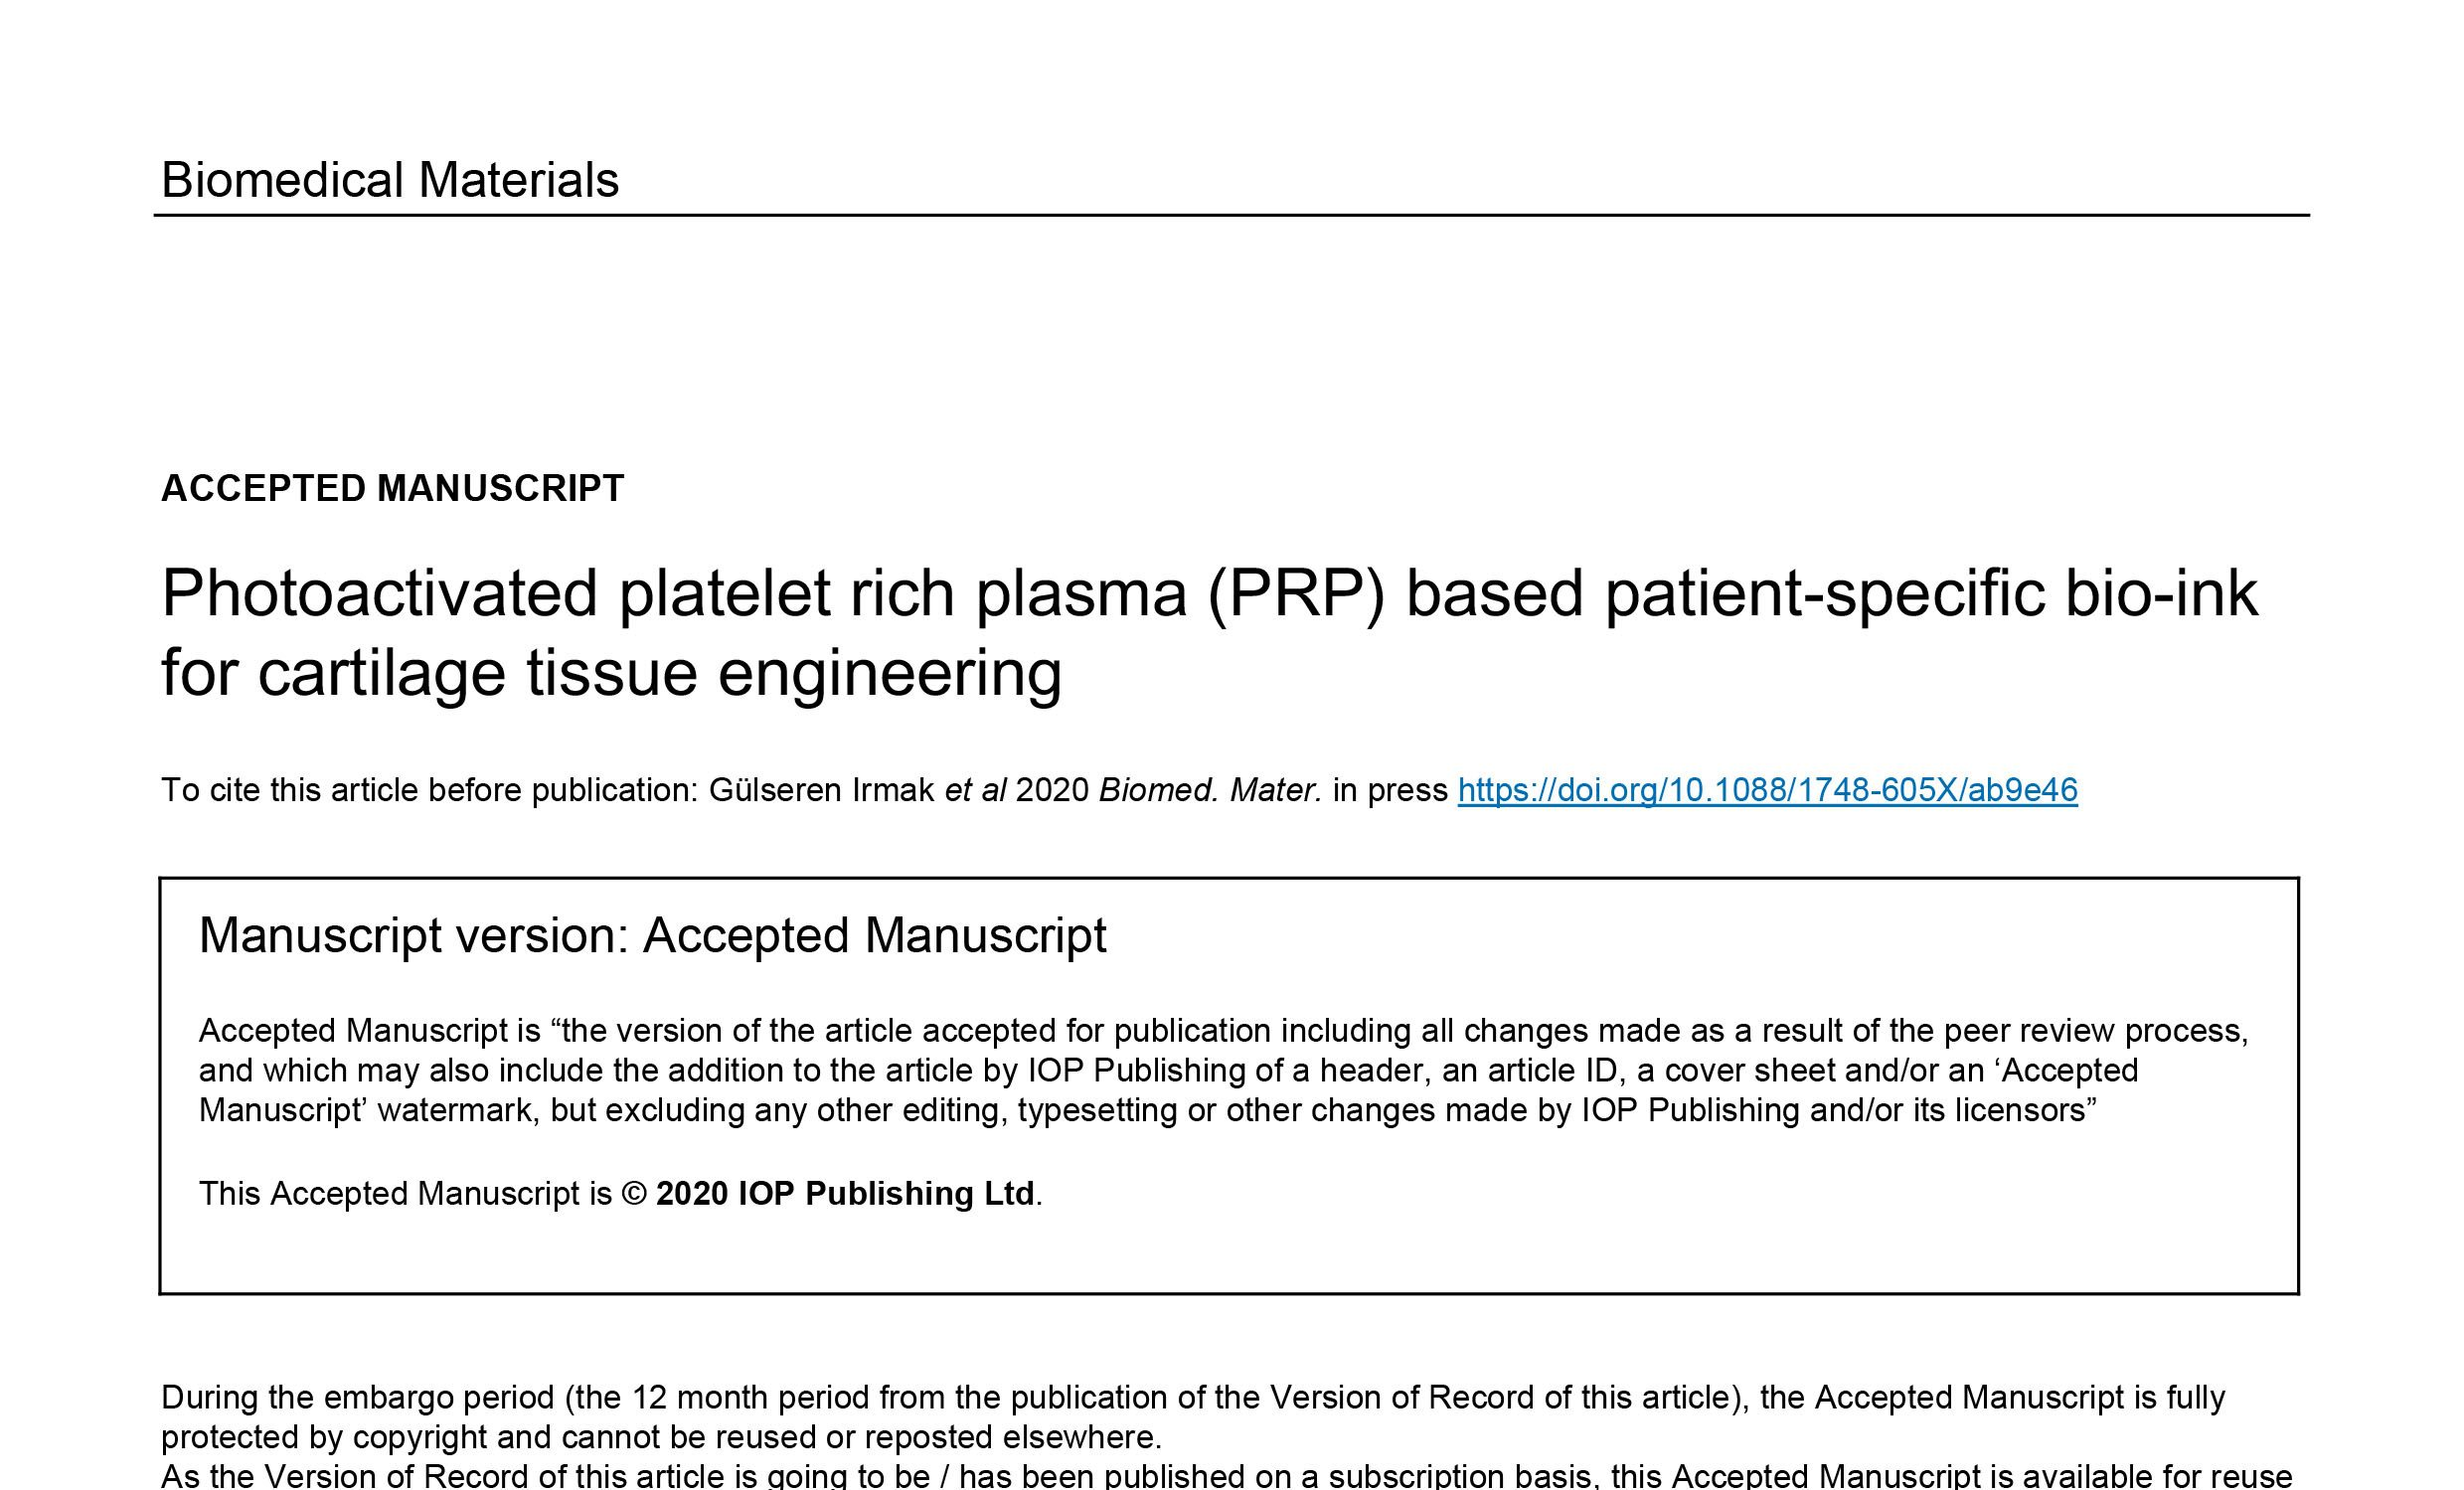 PHOTOACTIVATED PLATELET RICH PLASMA (PRP) BASED PATIENT-SPECIFIC BIO-INK FOR CARTILAGE TISSUE ENGINEERING